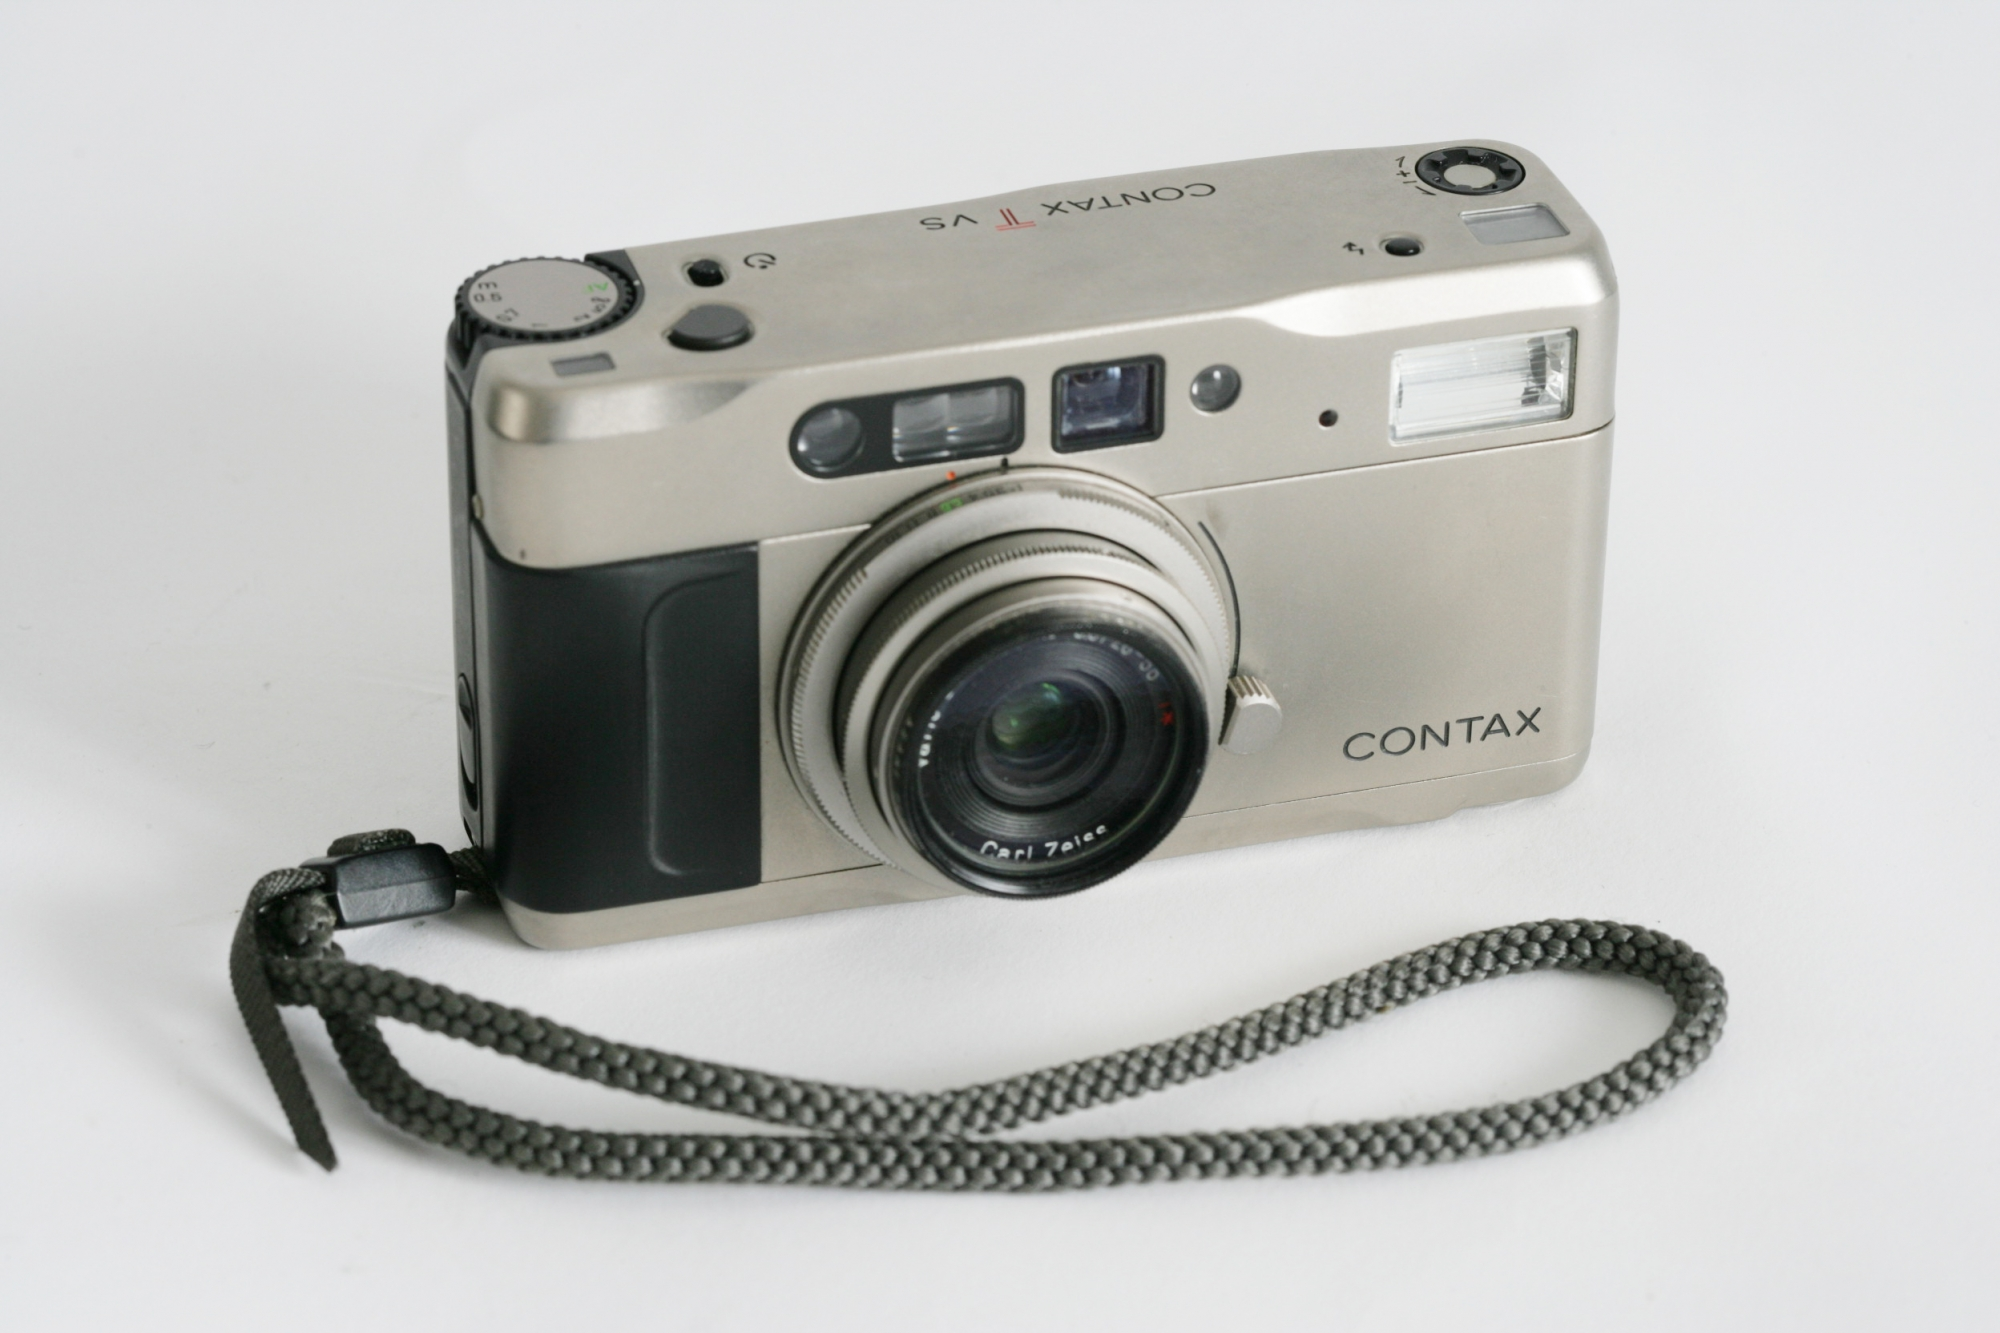 Contax TVS zoom to 55mm. £25 per day